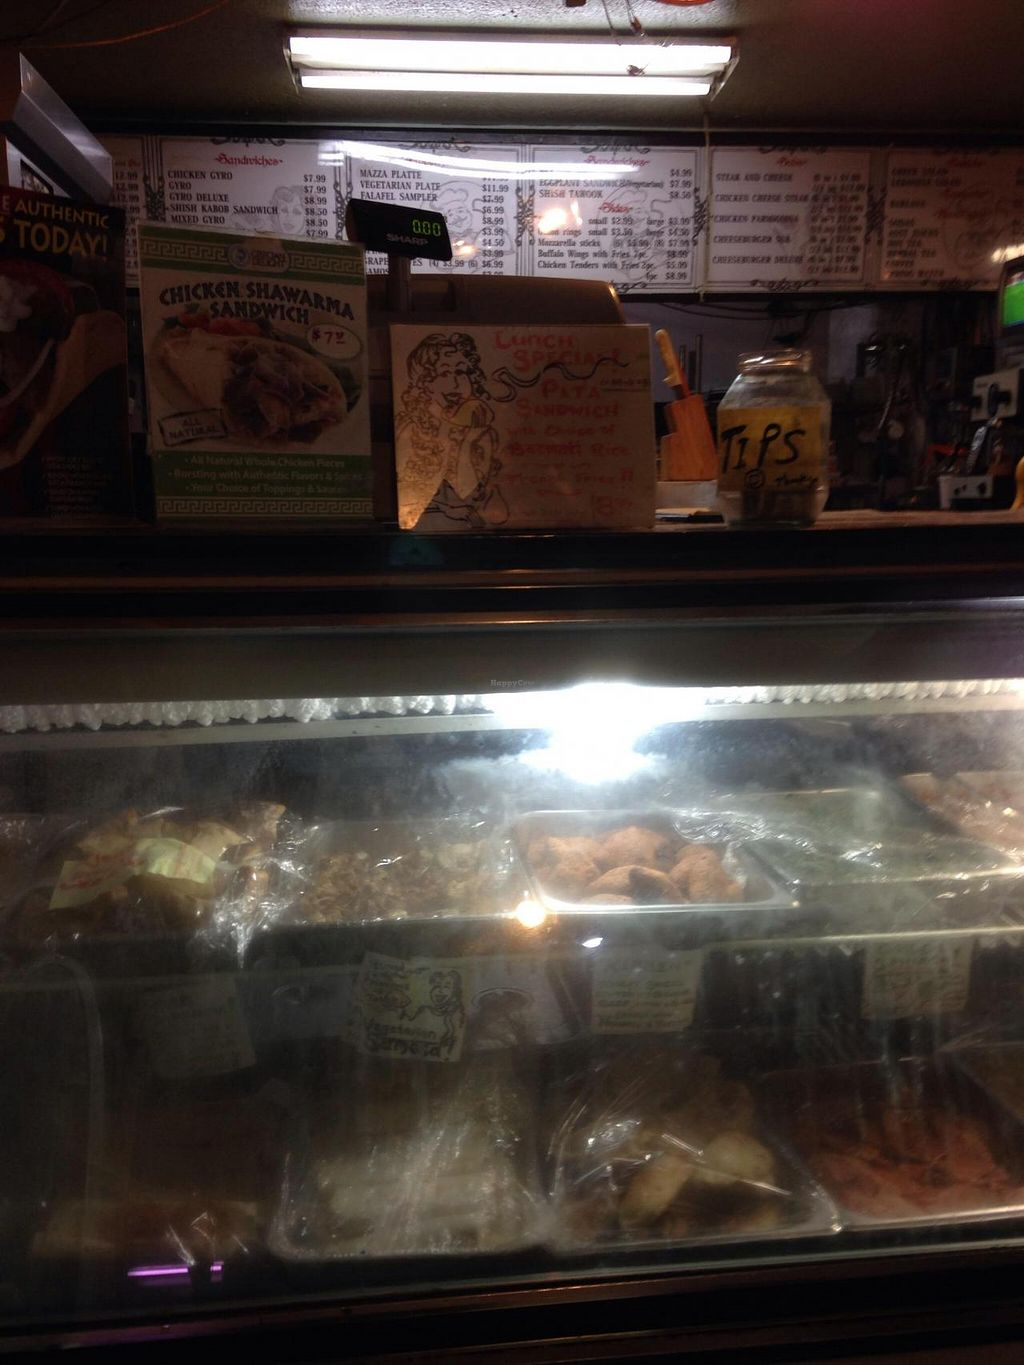 """Photo of D C Cafe  by <a href=""""/members/profile/cookiem"""">cookiem</a> <br/>The case at the register <br/> April 25, 2014  - <a href='/contact/abuse/image/46387/68537'>Report</a>"""